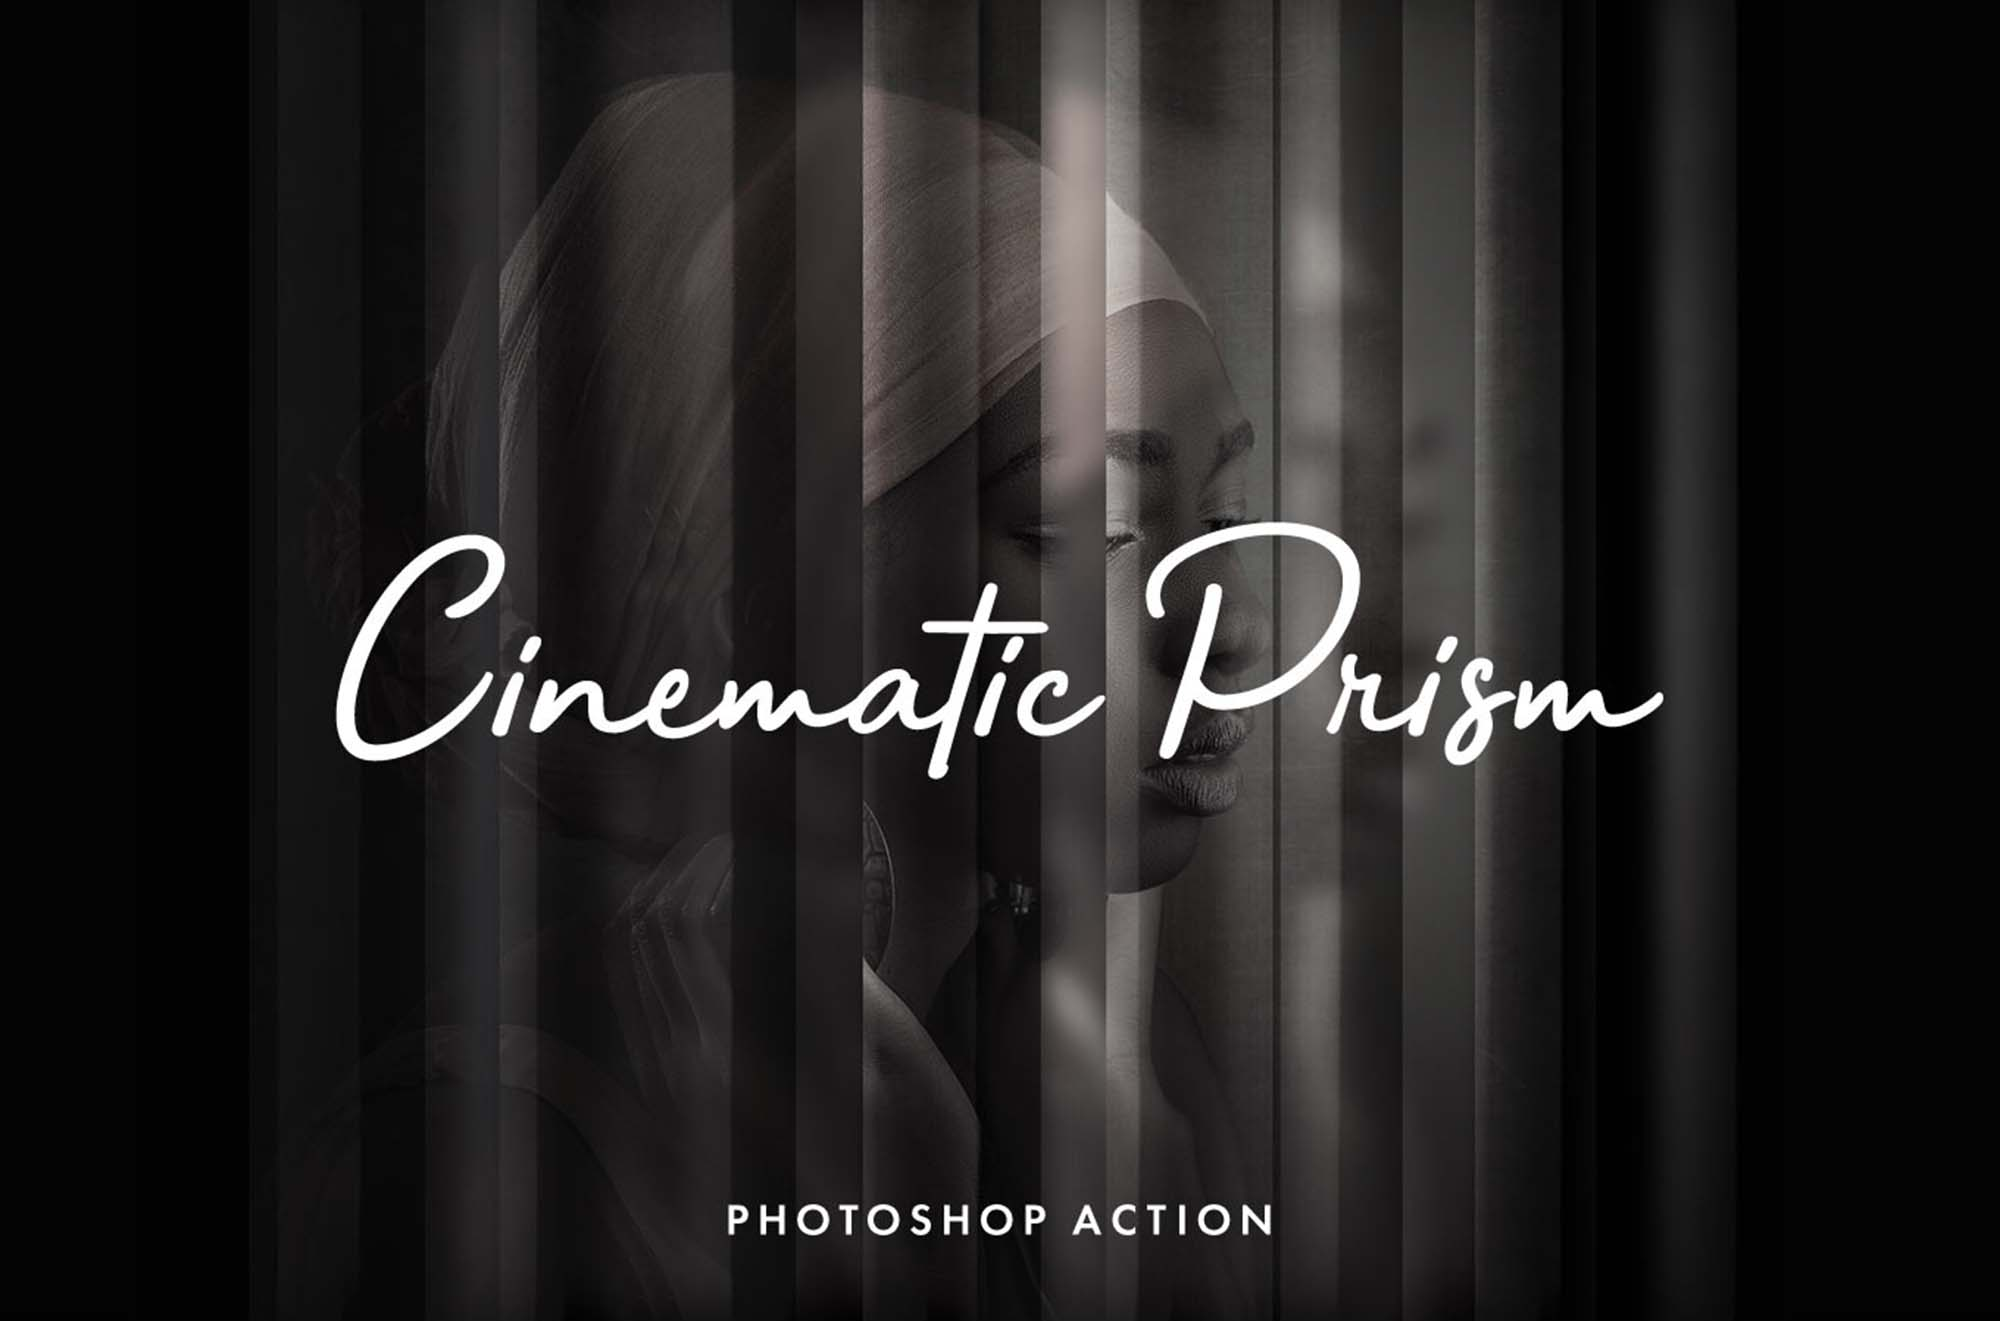 Cinematic Prism Photoshop Action